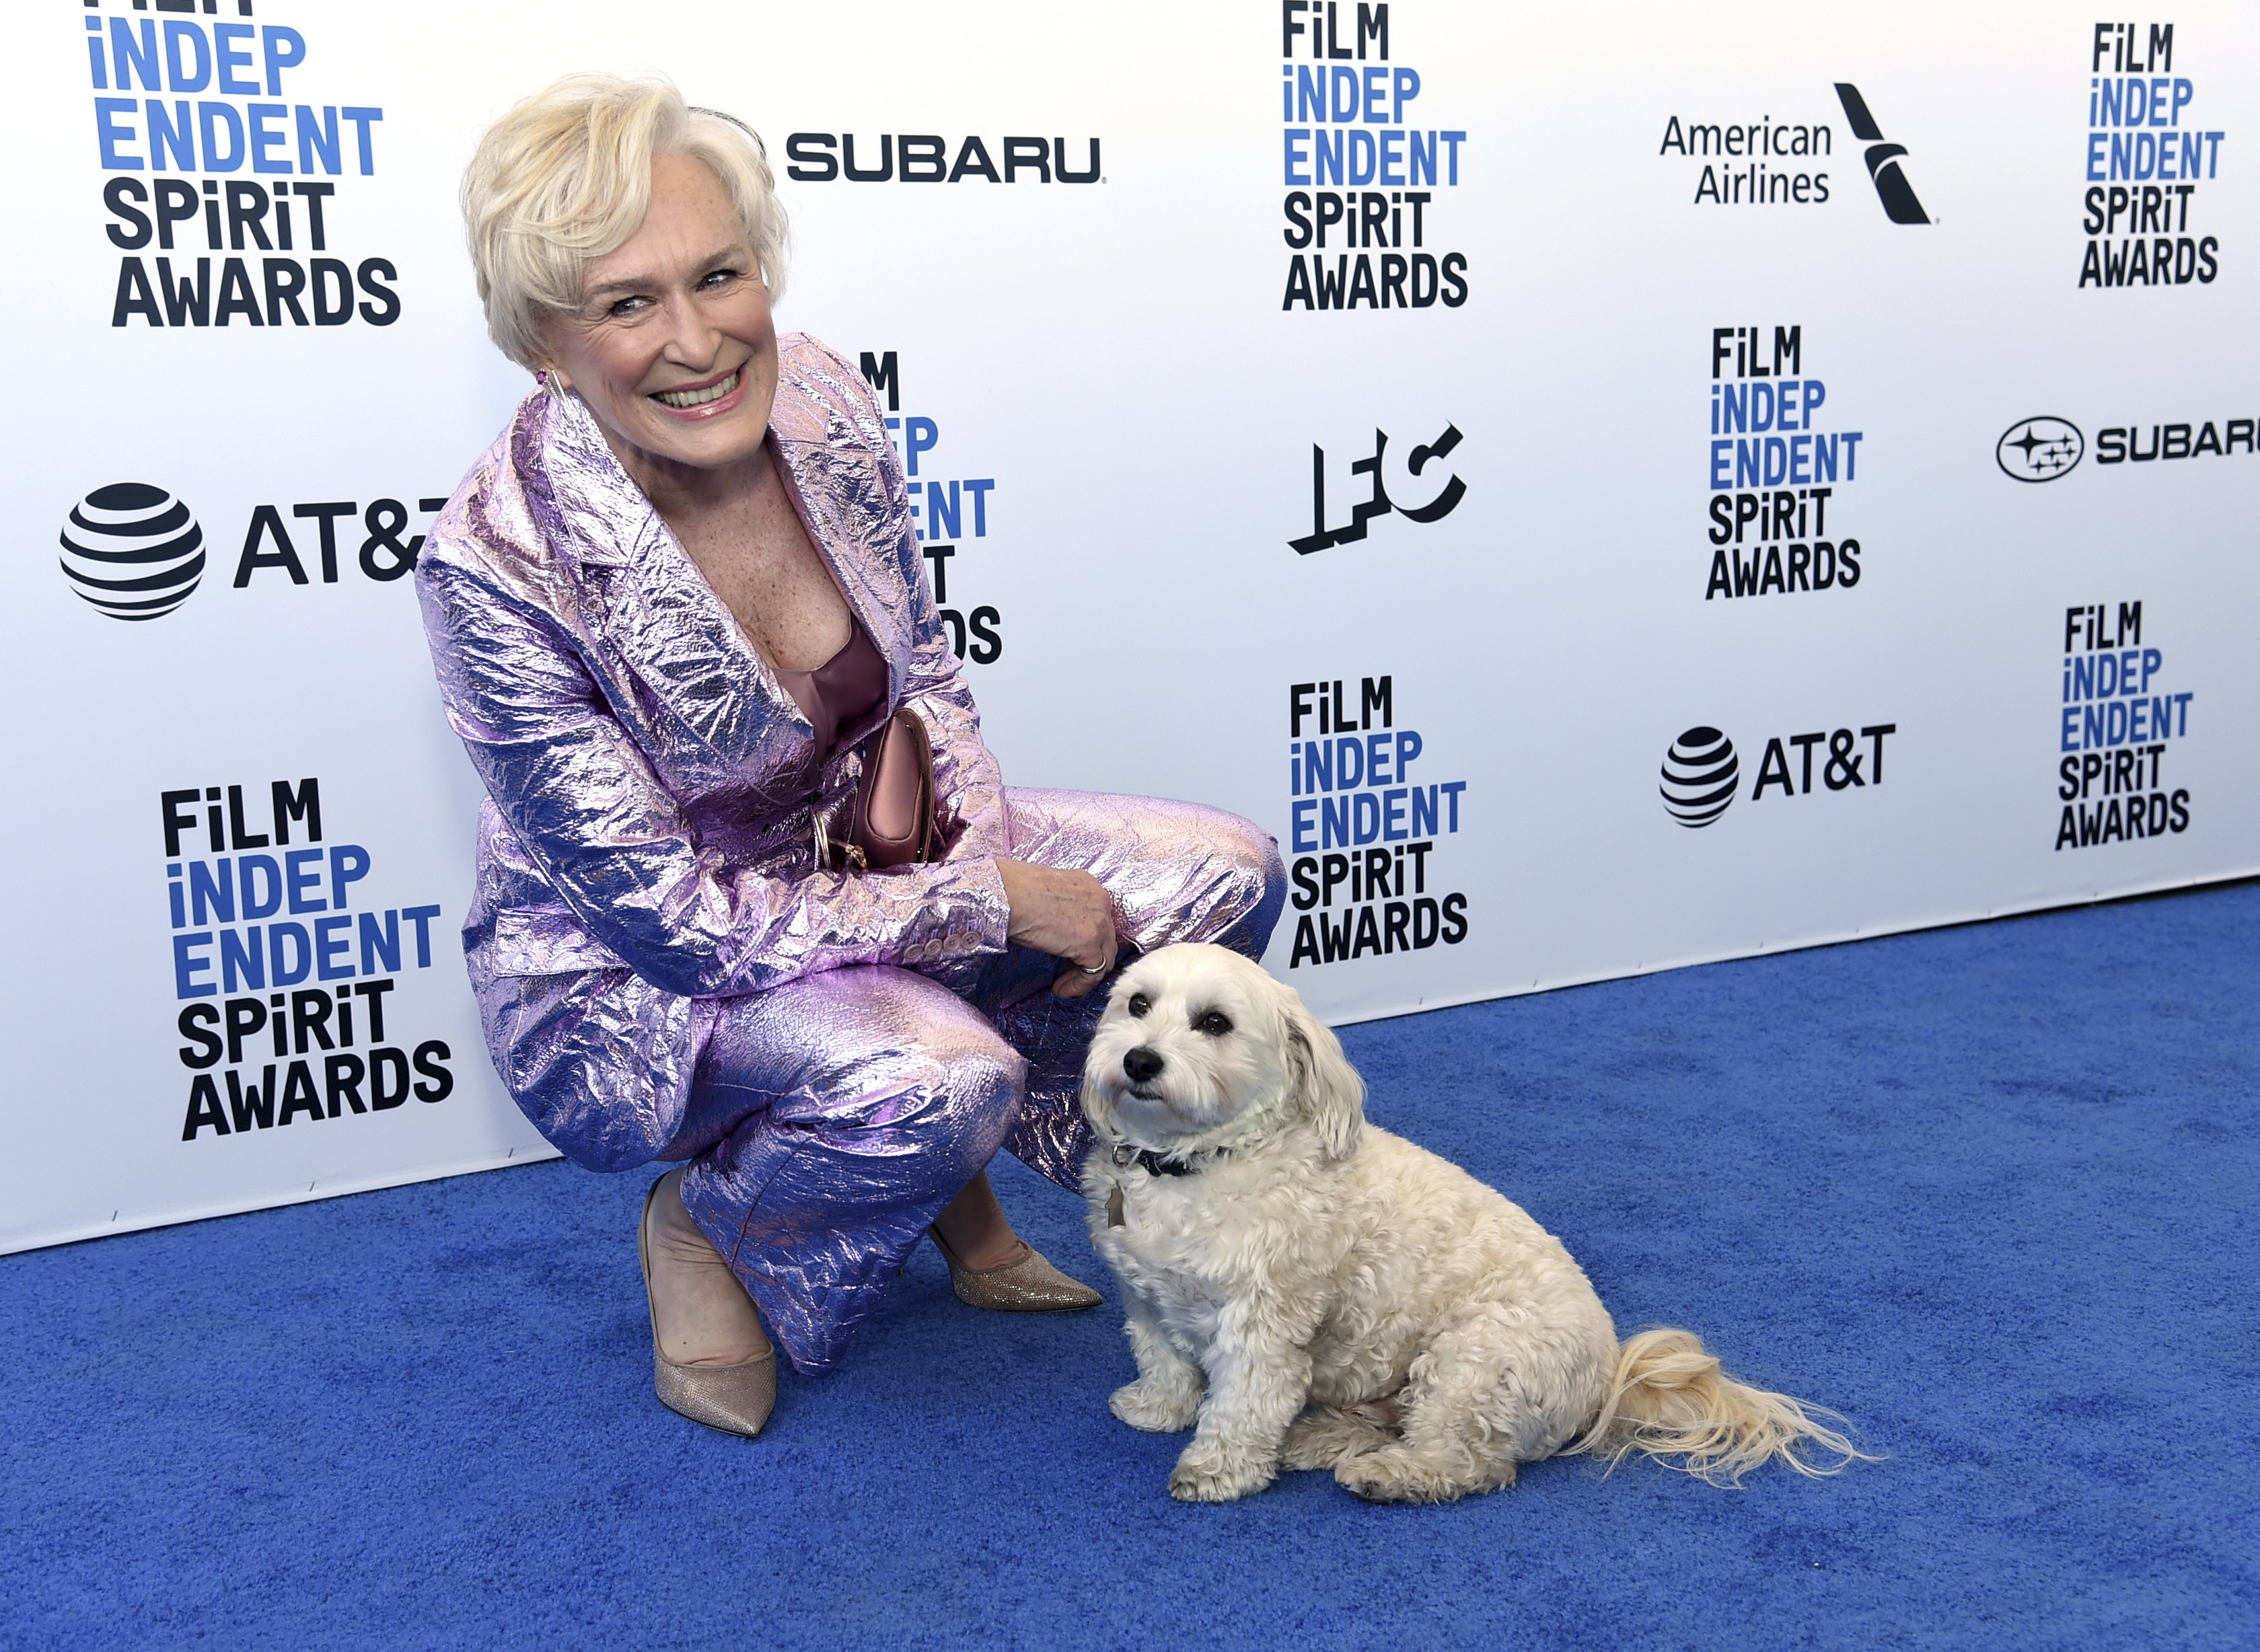 Glenn Close's Dog Steals The Show At The Independent Spirit Awards